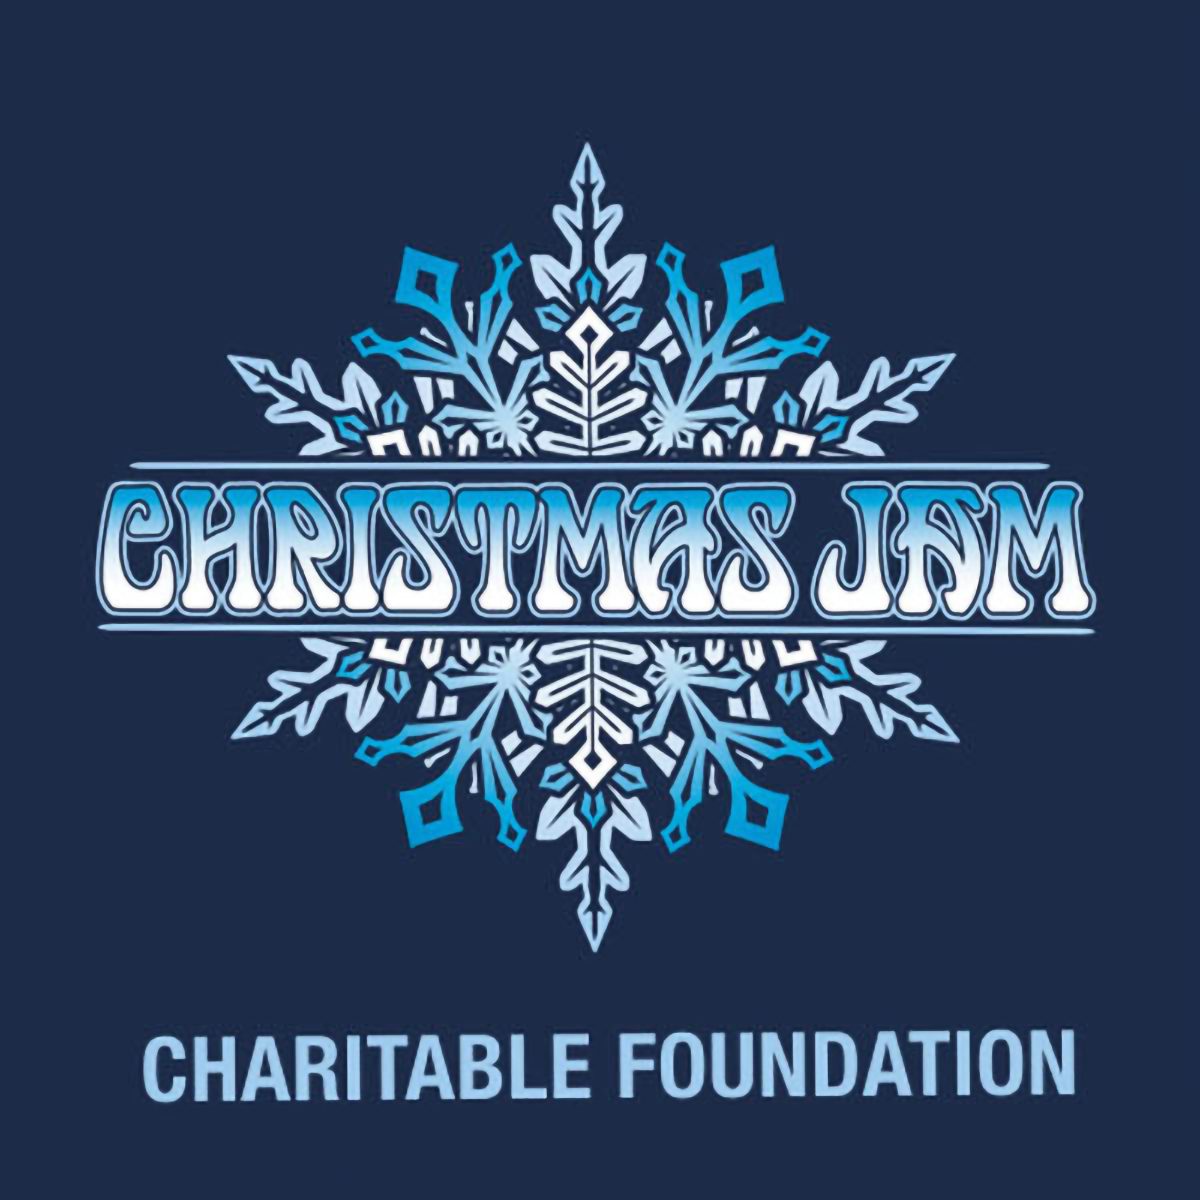 Donation to the Warren Haynes Christmas Jam W&S Charitable Foundation